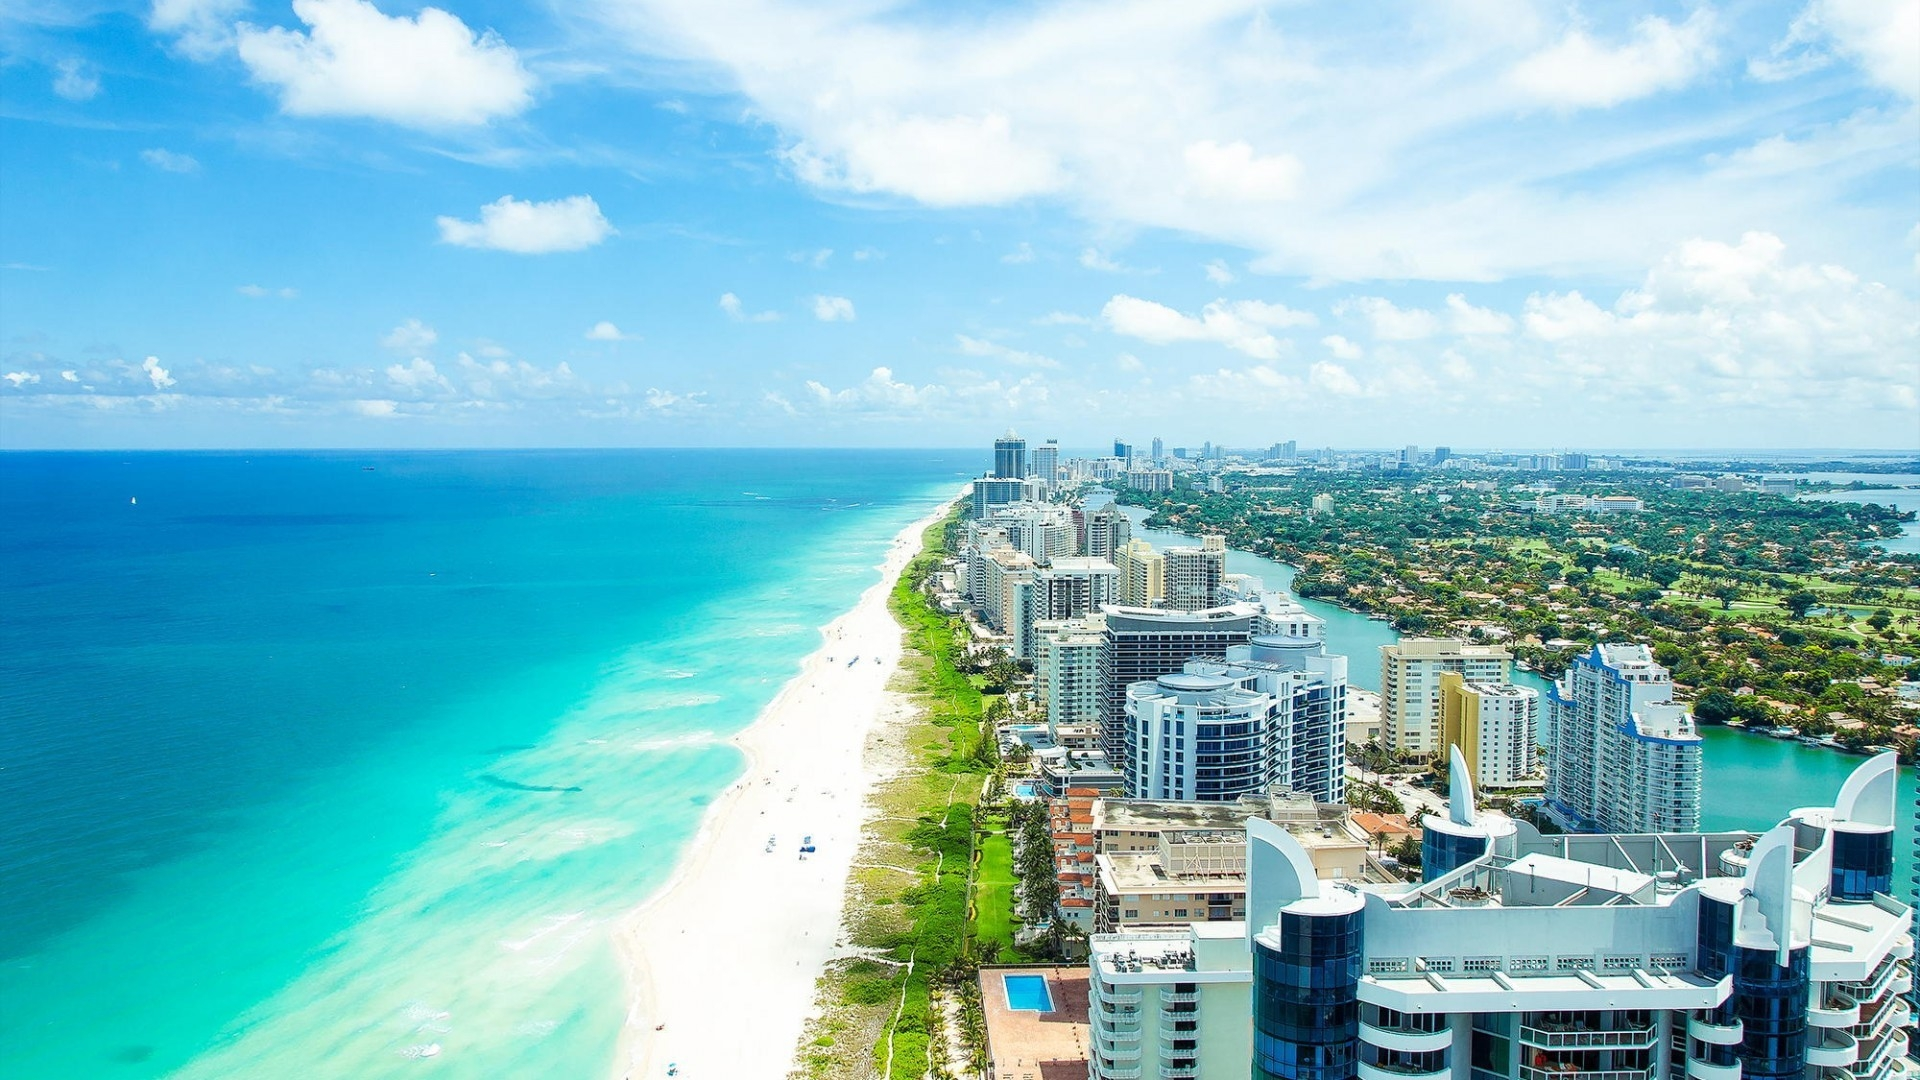 1920x1080 Miami Beach Aerial View Desktop PC And Mac Wallpaper